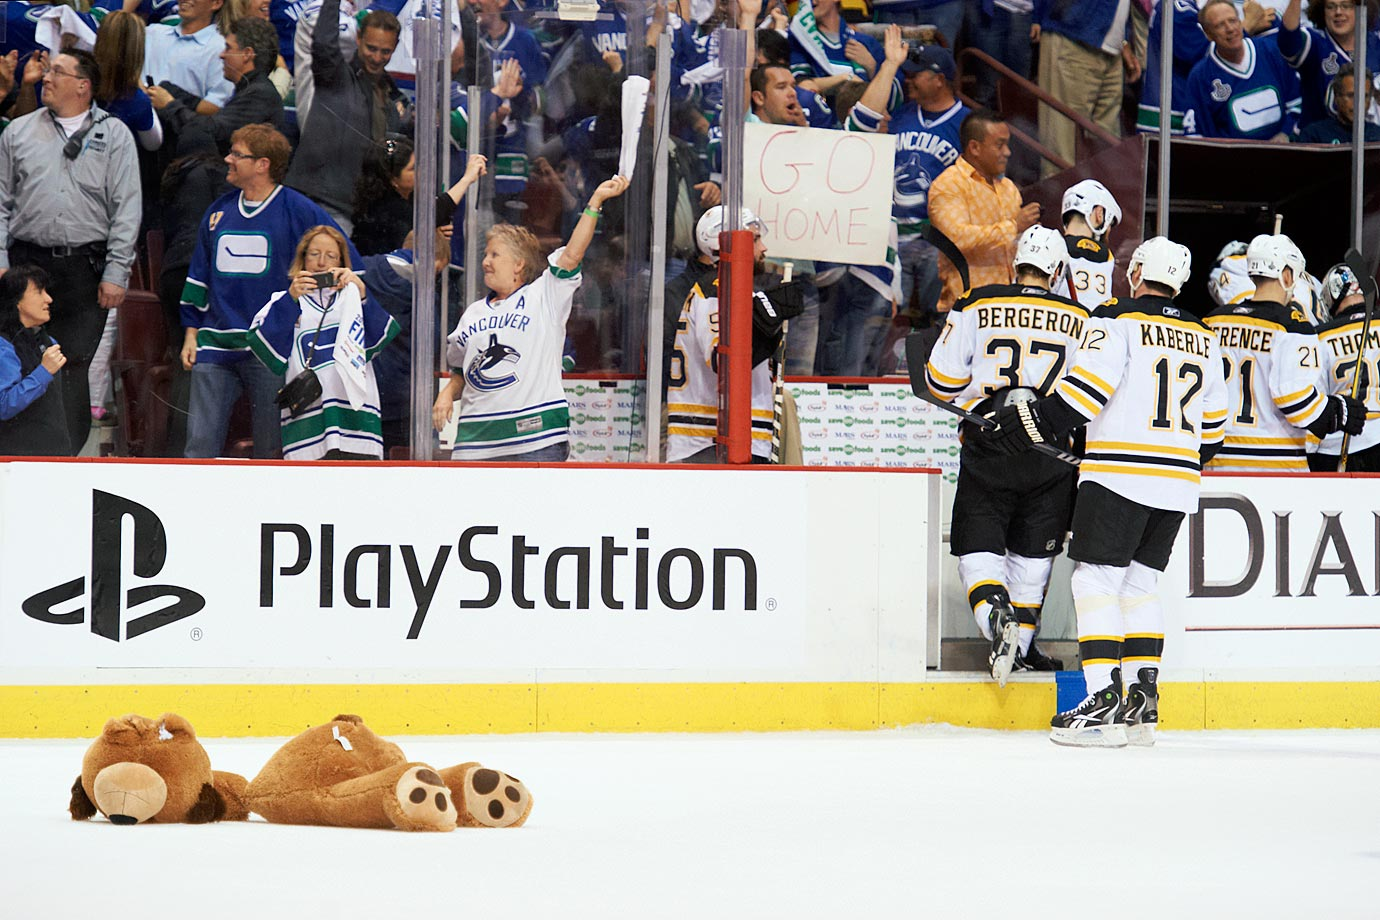 After narrowly winning Game 5 at home, 1-0, the Canucks were one win away from the franchise's first Stanley Cup. And their fans, known as a colorful and passionate bunch, showed their support, with one throwing a decapitated stuffed bear onto the ice as the defeated Bruins departed.